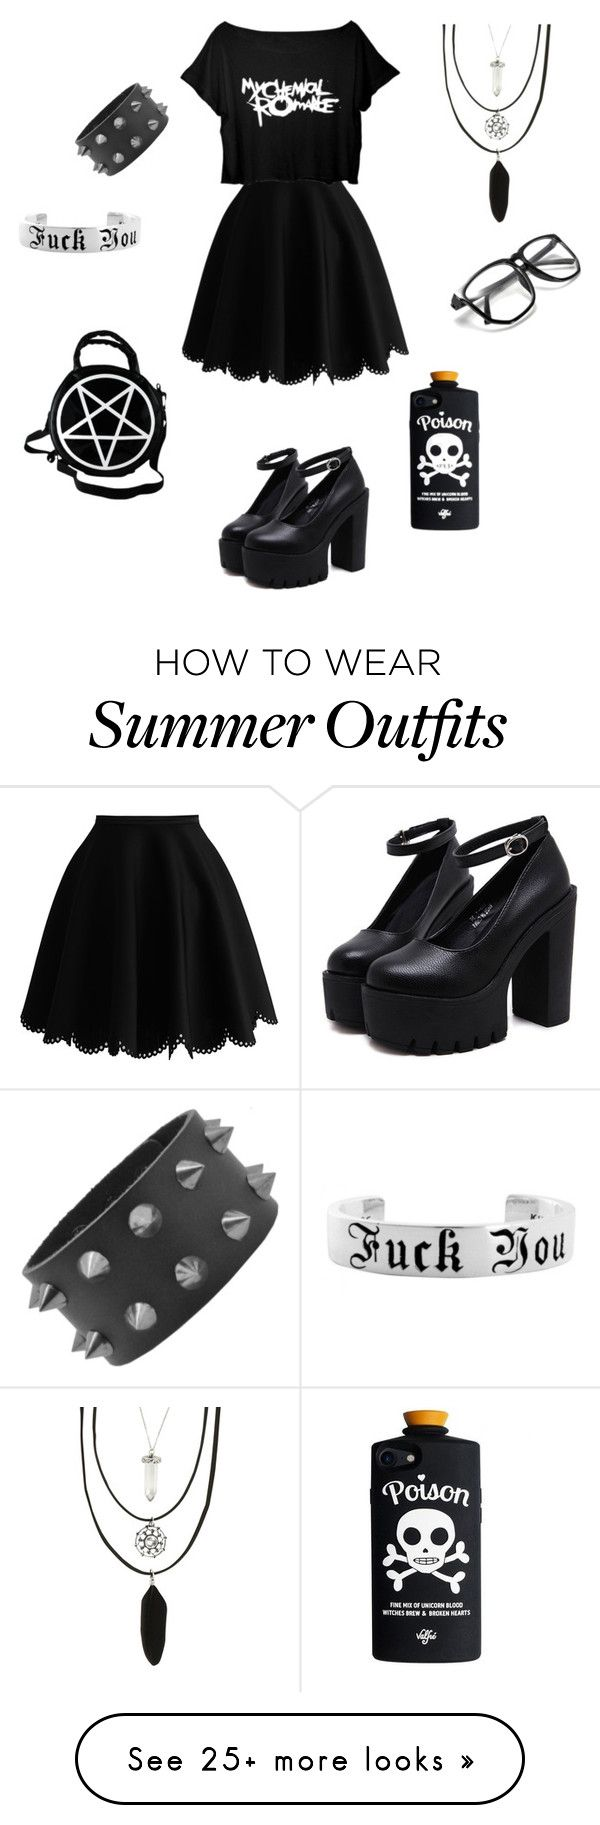 """Summer in black outfit"" by ja-ja-ja on Polyvore featuring Hot Topic"